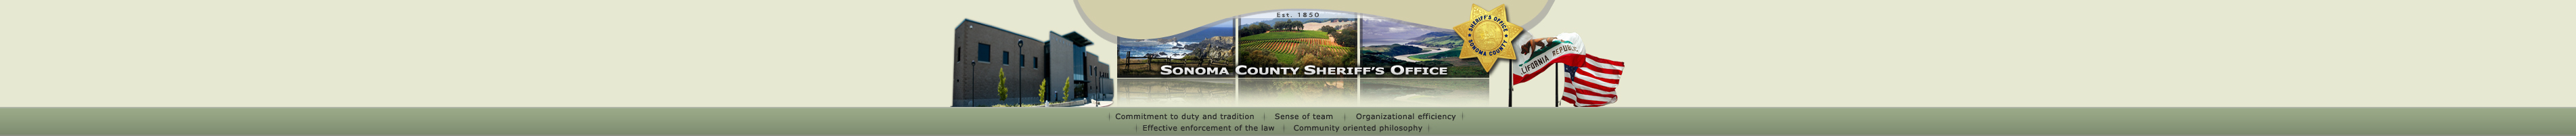 Jail Industries — Sonoma County Sheriff's Office